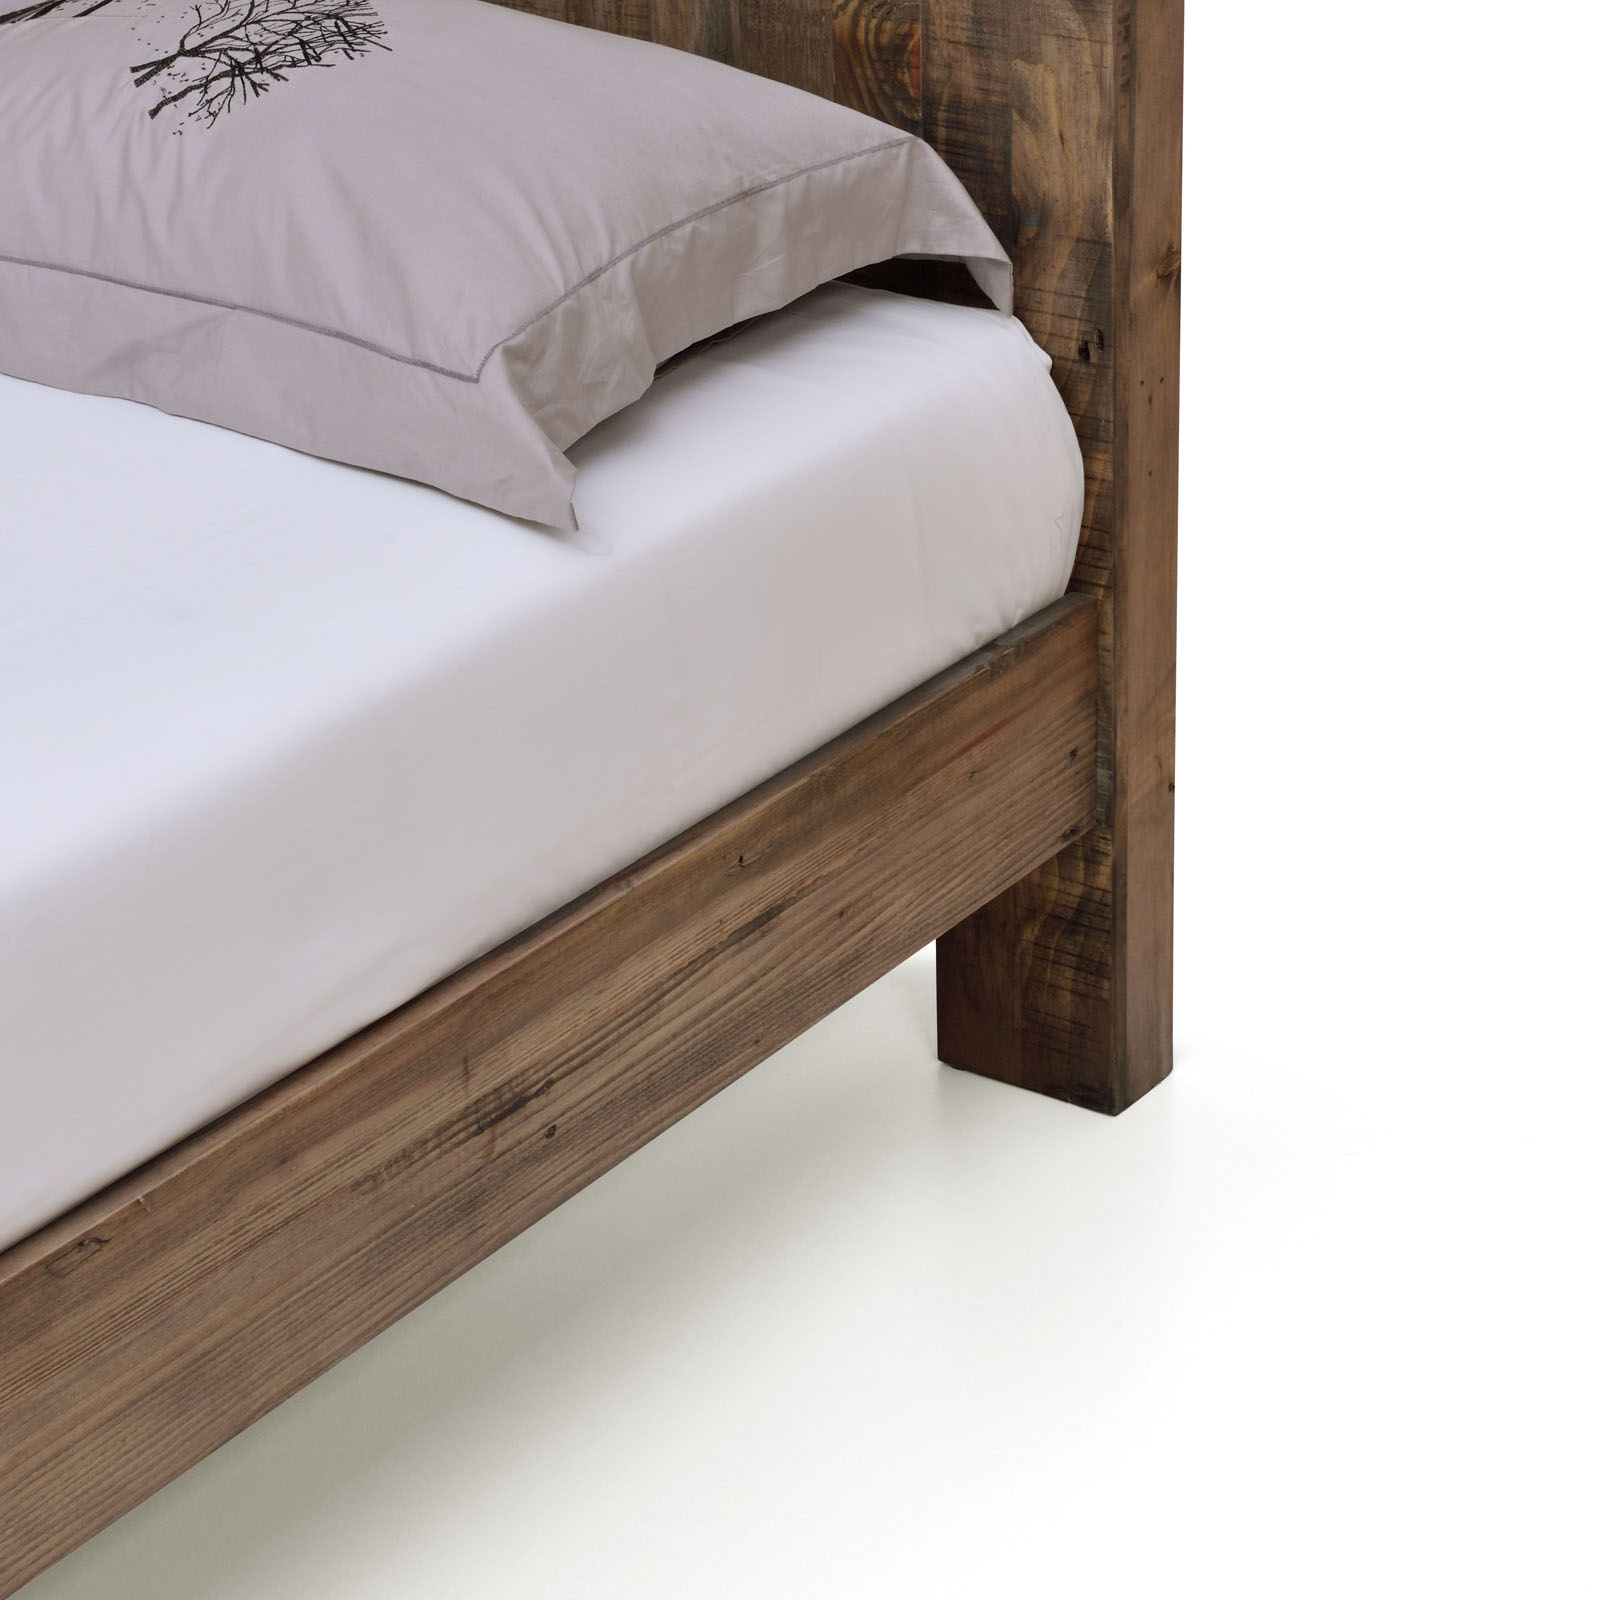 boston brand new recycled solid pine timber king - Double Size Bed Frame